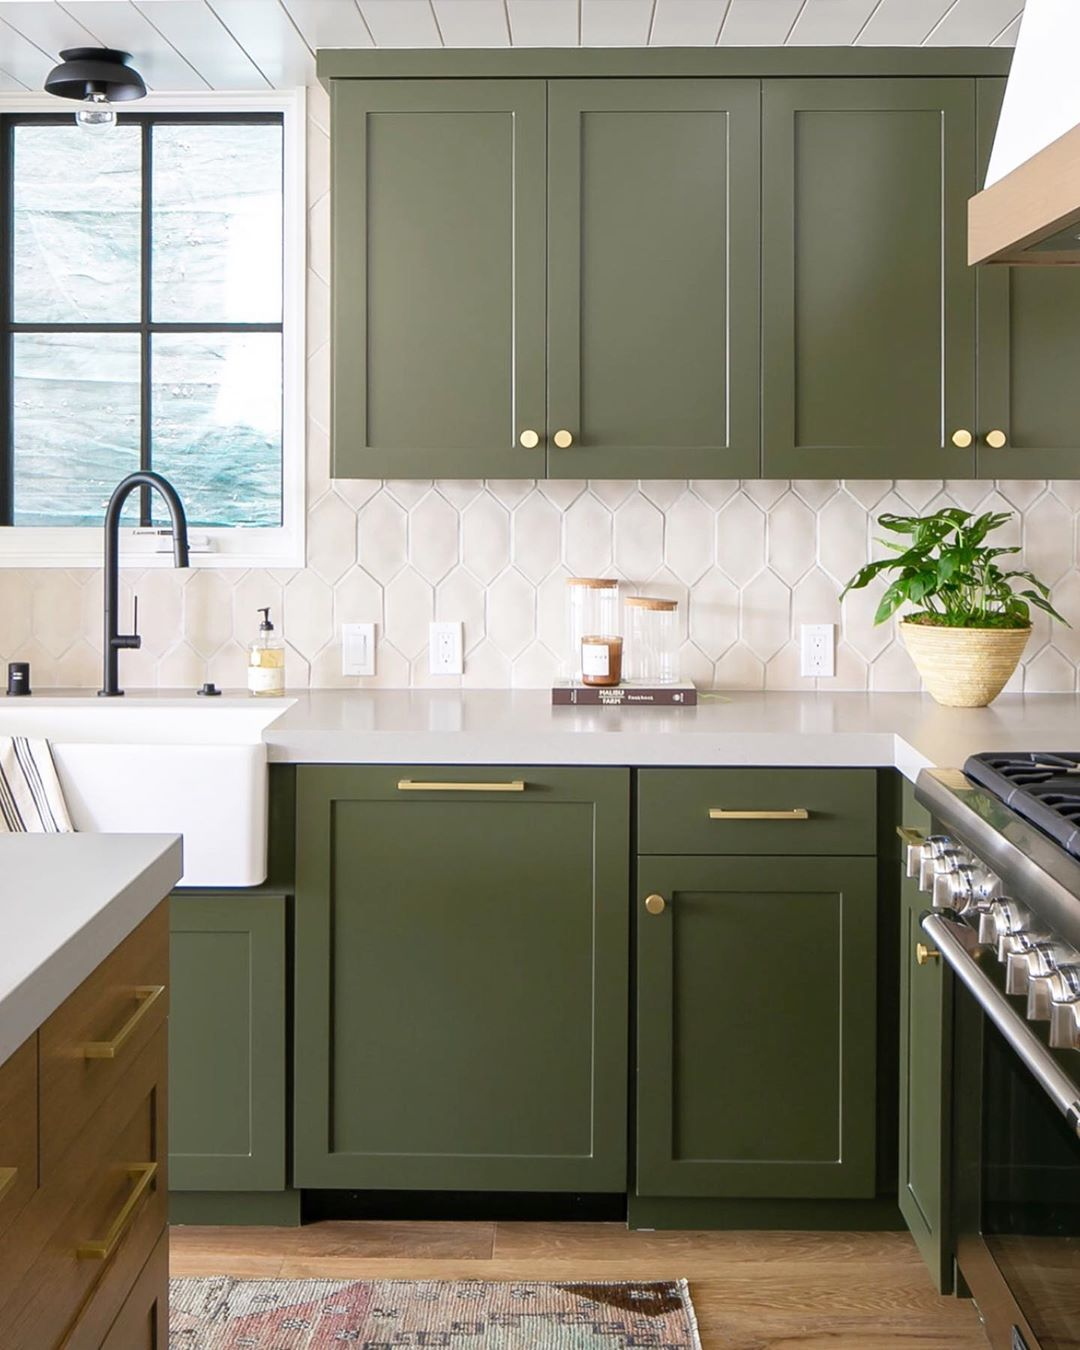 Brooke Wagner Design On Instagram Usually The Island Is The Focal Point Of The Kitchen But In Thi Bold Kitchen Green Kitchen Cabinets Kitchen Cabinet Design